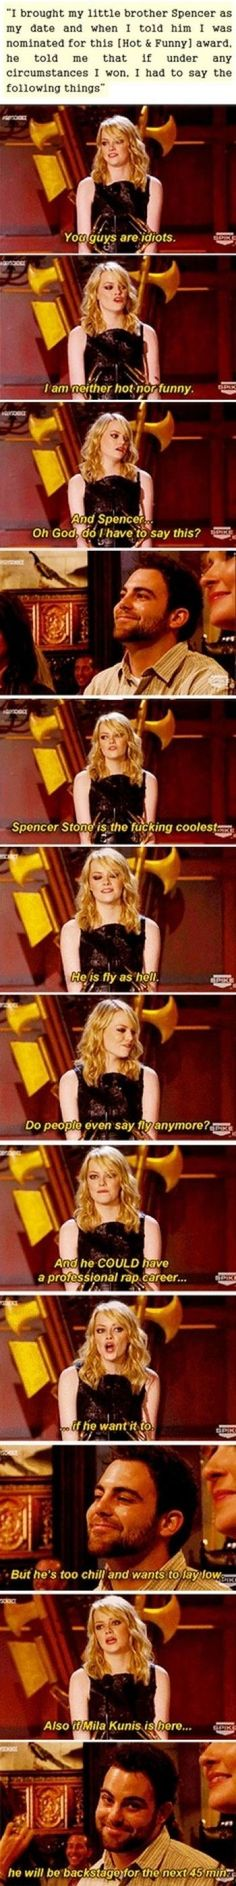 Emma stone lost bet to her brother